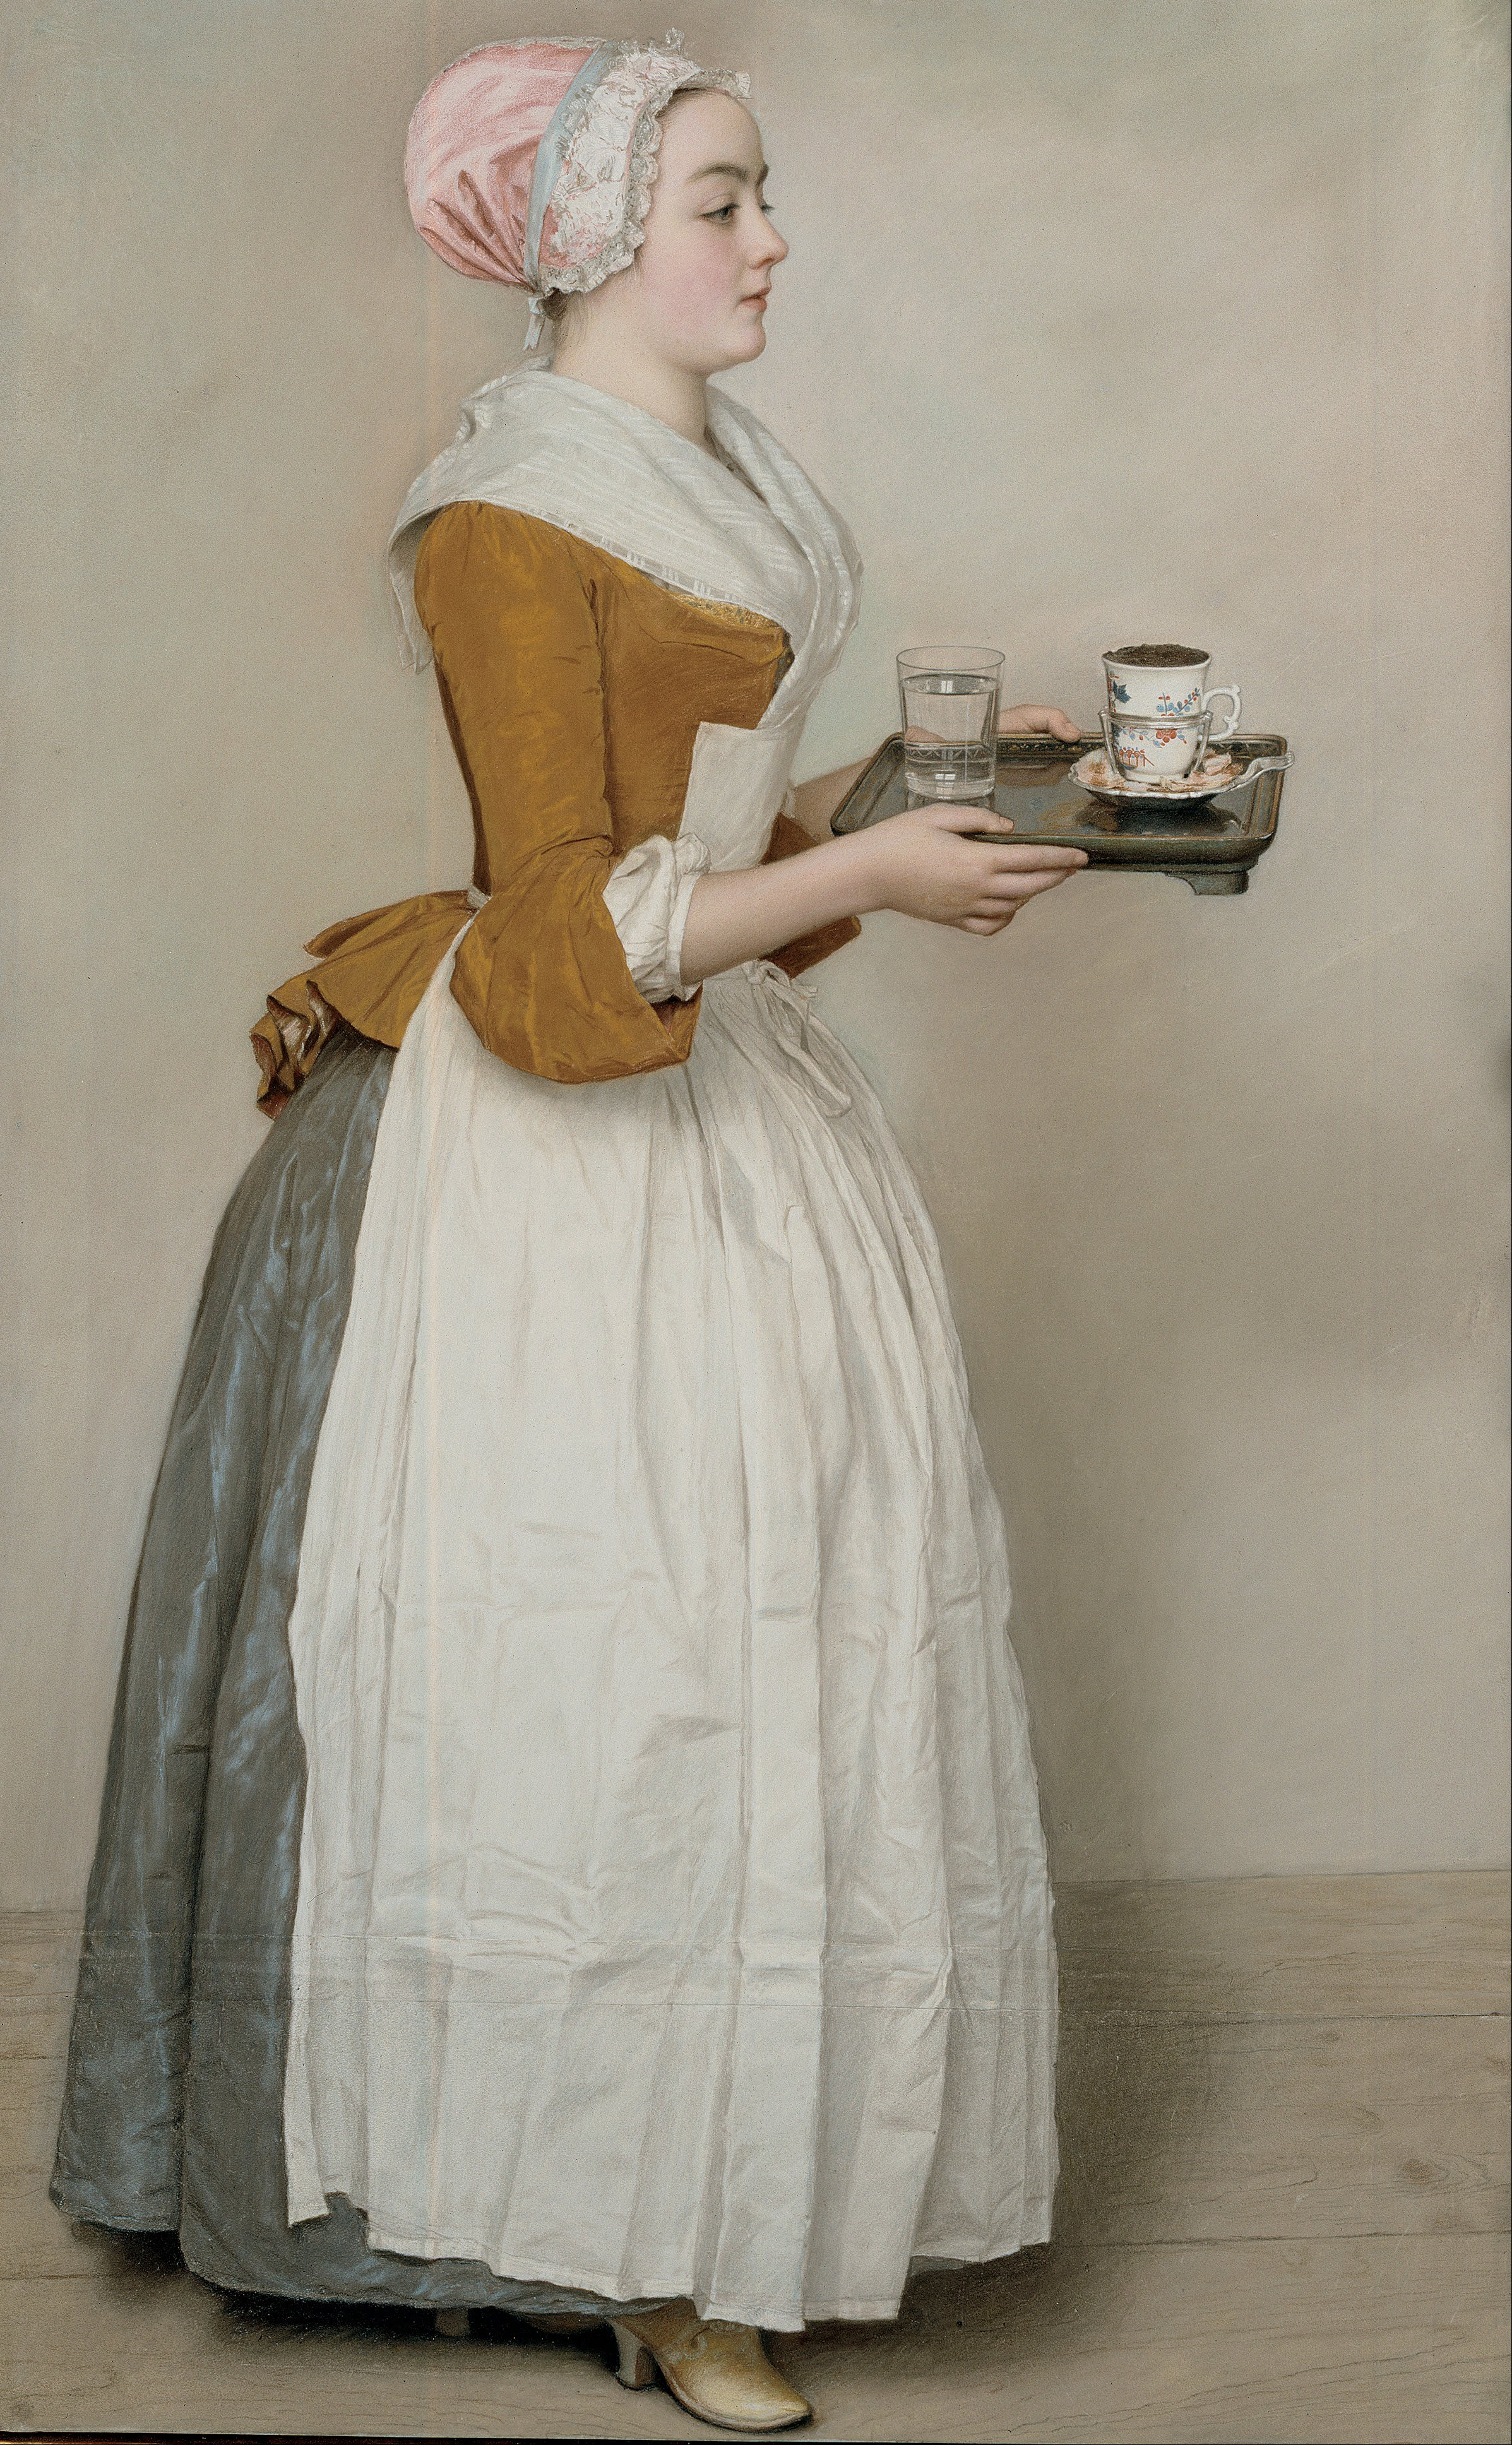 Pastel on parchment of a carrying a tray with a glass of water and cocoa